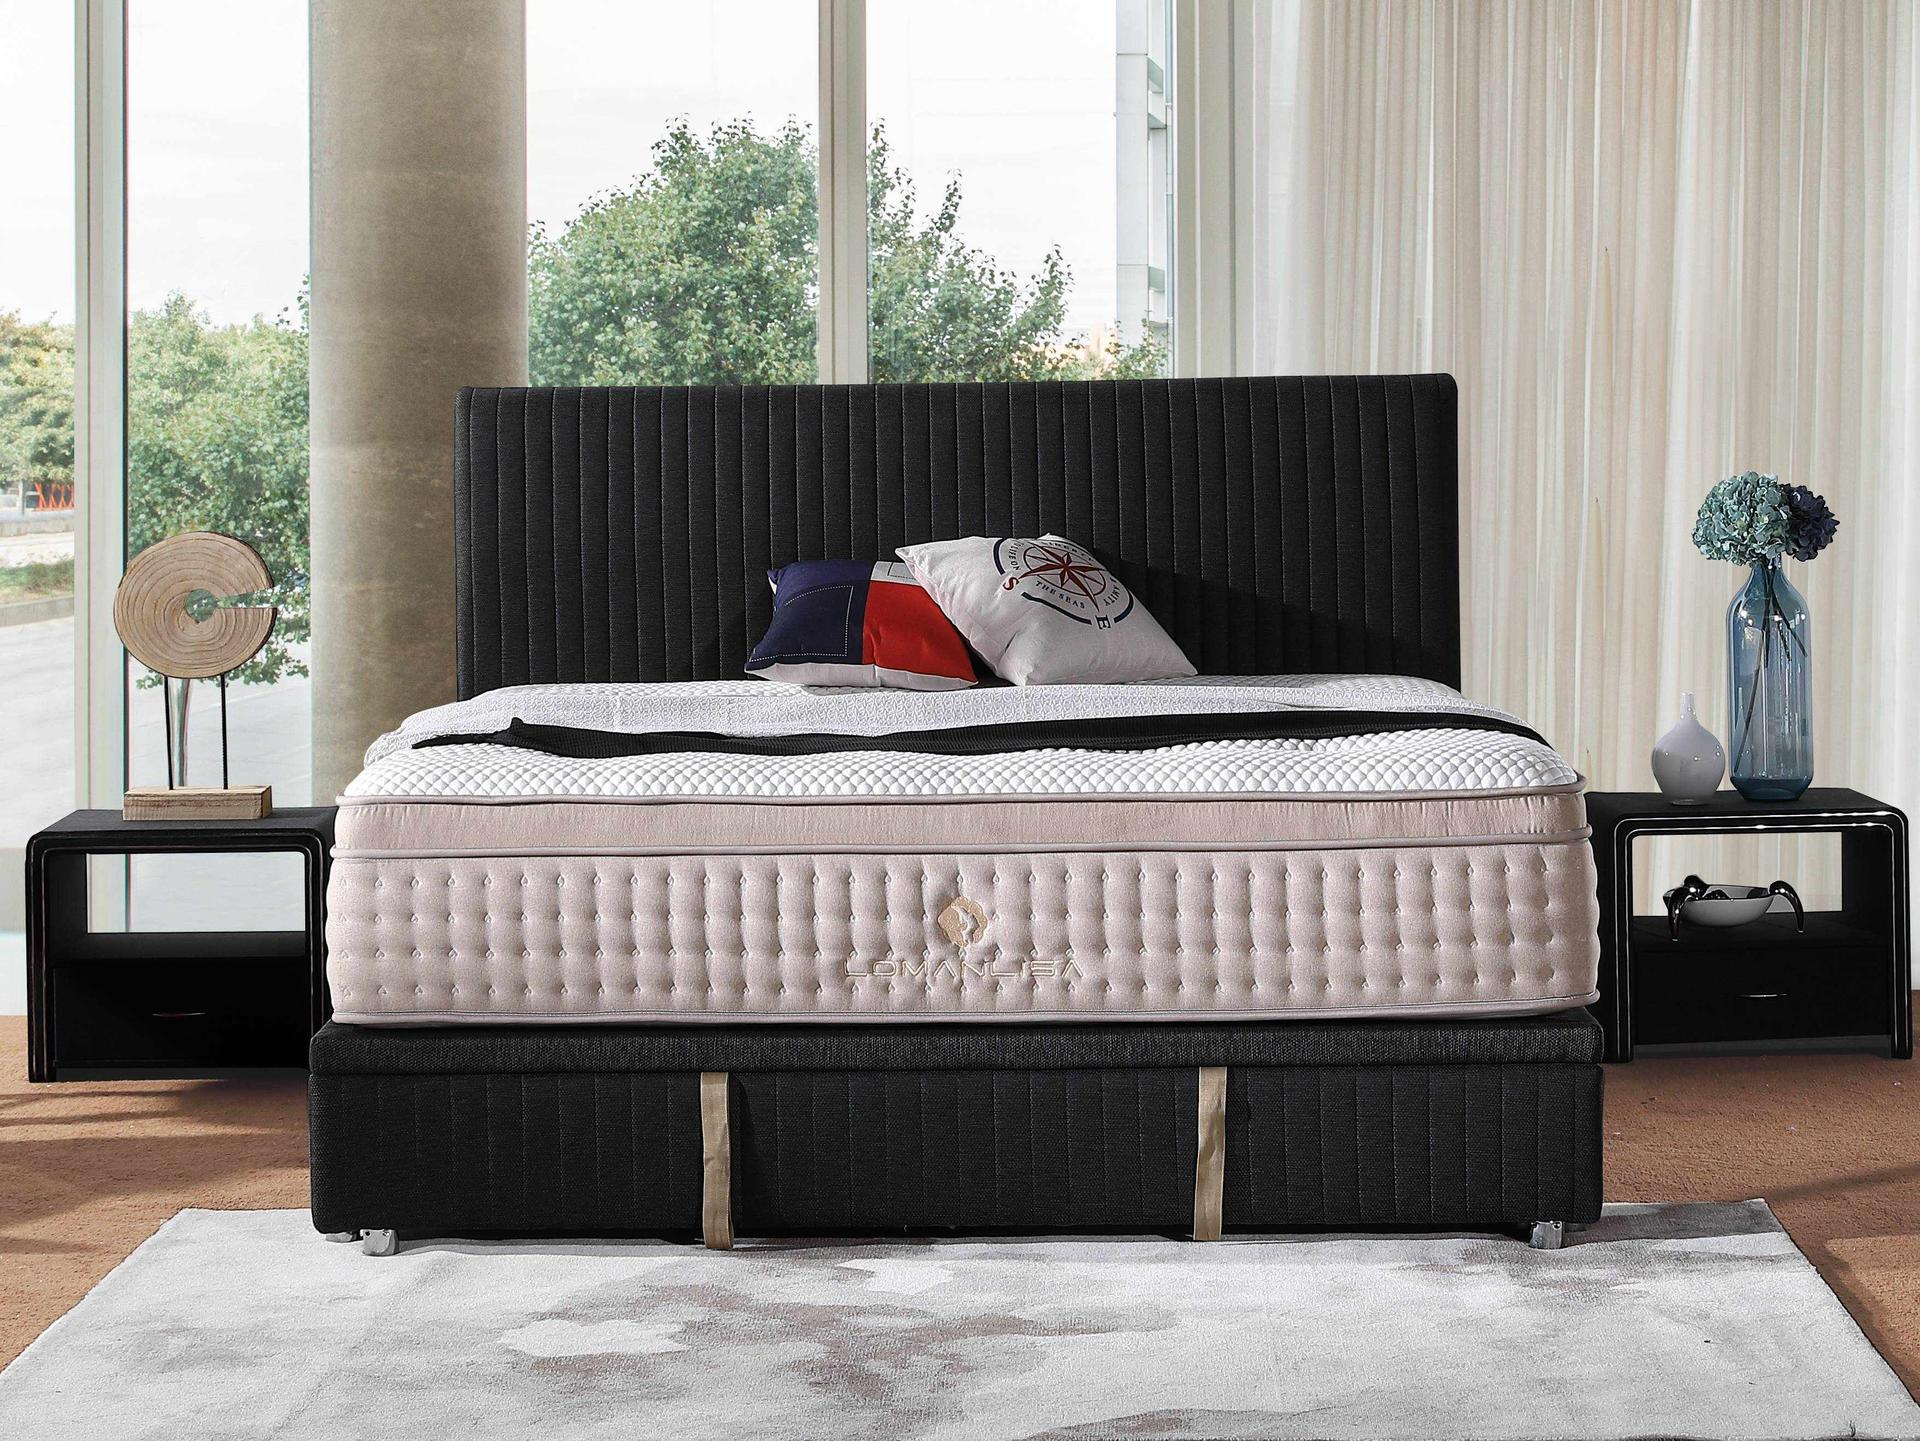 34PD-02 | 2018 Beautiful Design Hand Tufted Gel Memory Foam Double Layers Pocket Spring Mattress with High Quality Knitted Fabri